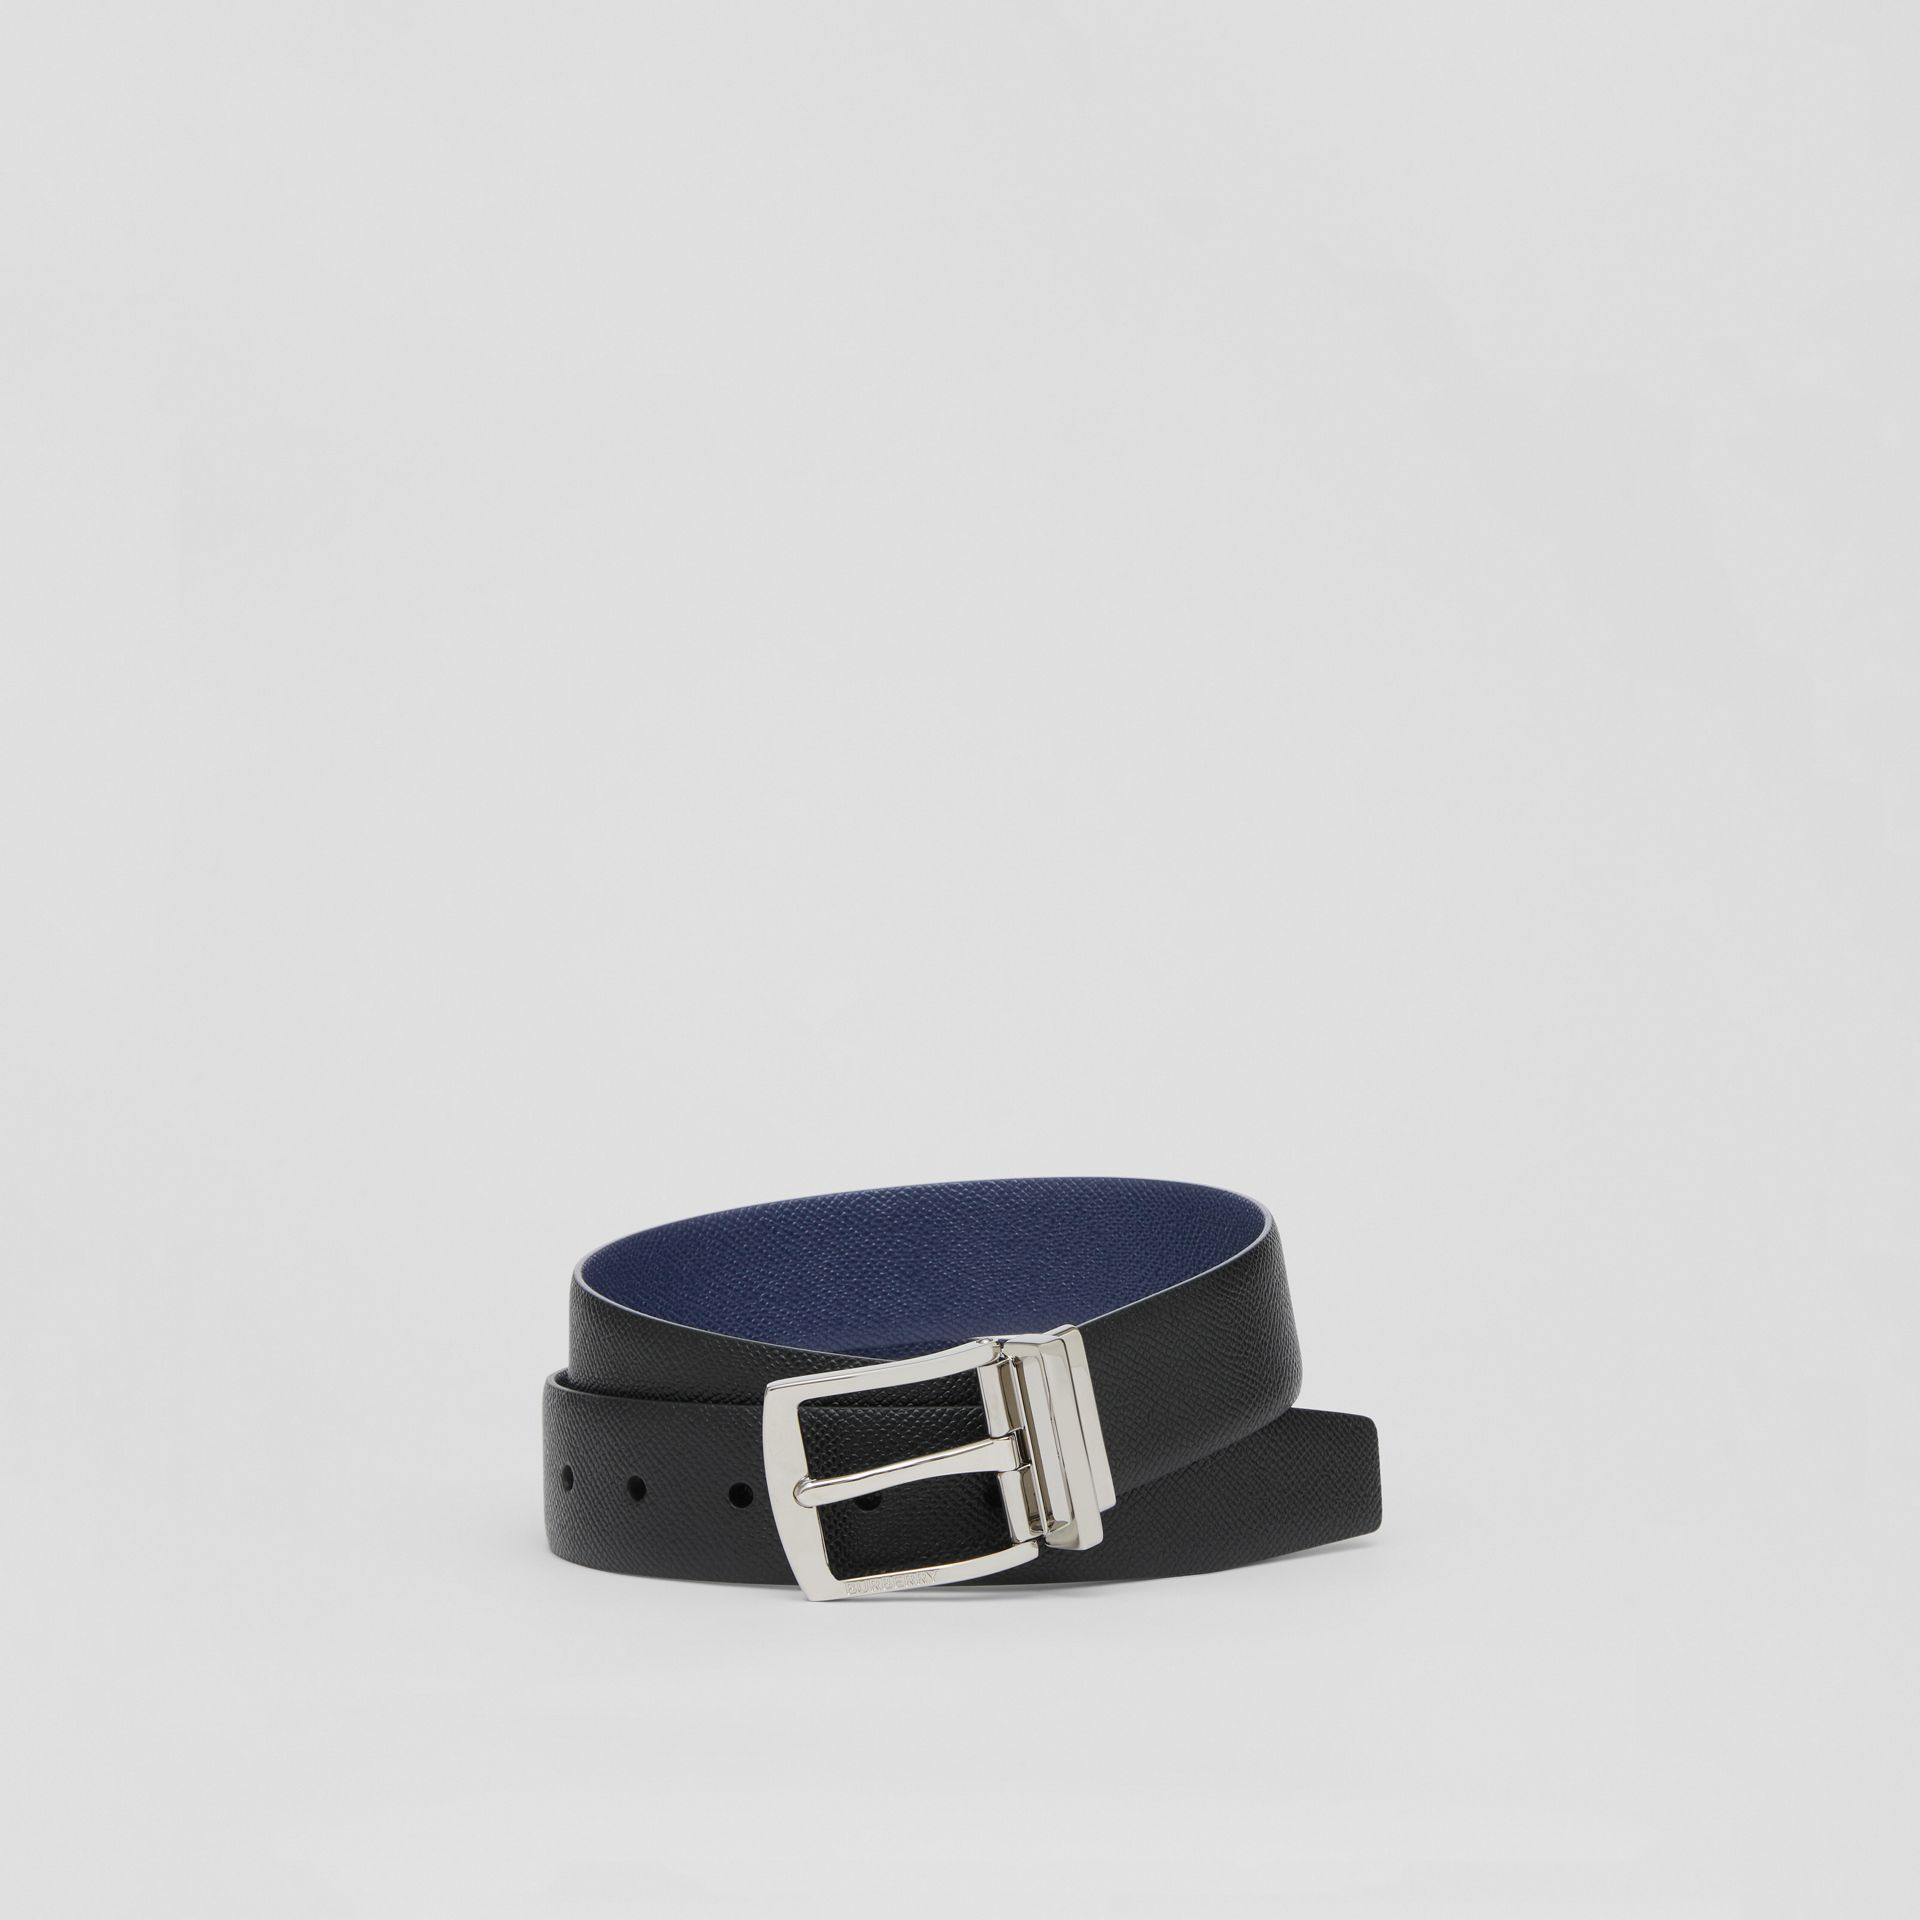 Reversible Grainy Leather Belt in Black/navy - Men | Burberry Hong Kong S.A.R - gallery image 0